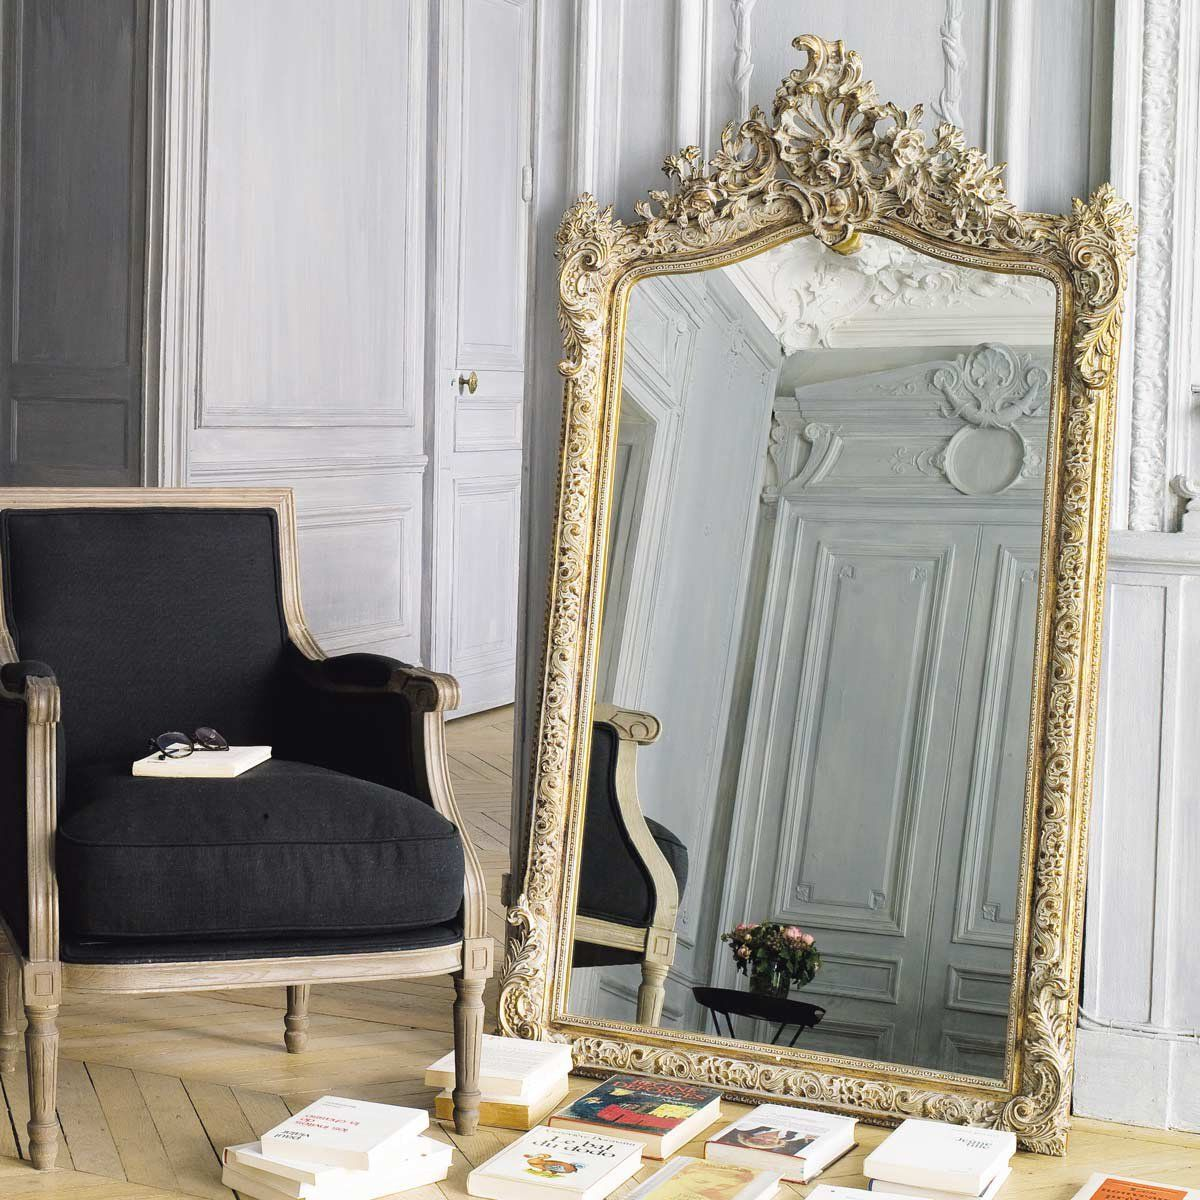 miroir dor 85x153 en 2019 miroir mon beau miroir. Black Bedroom Furniture Sets. Home Design Ideas